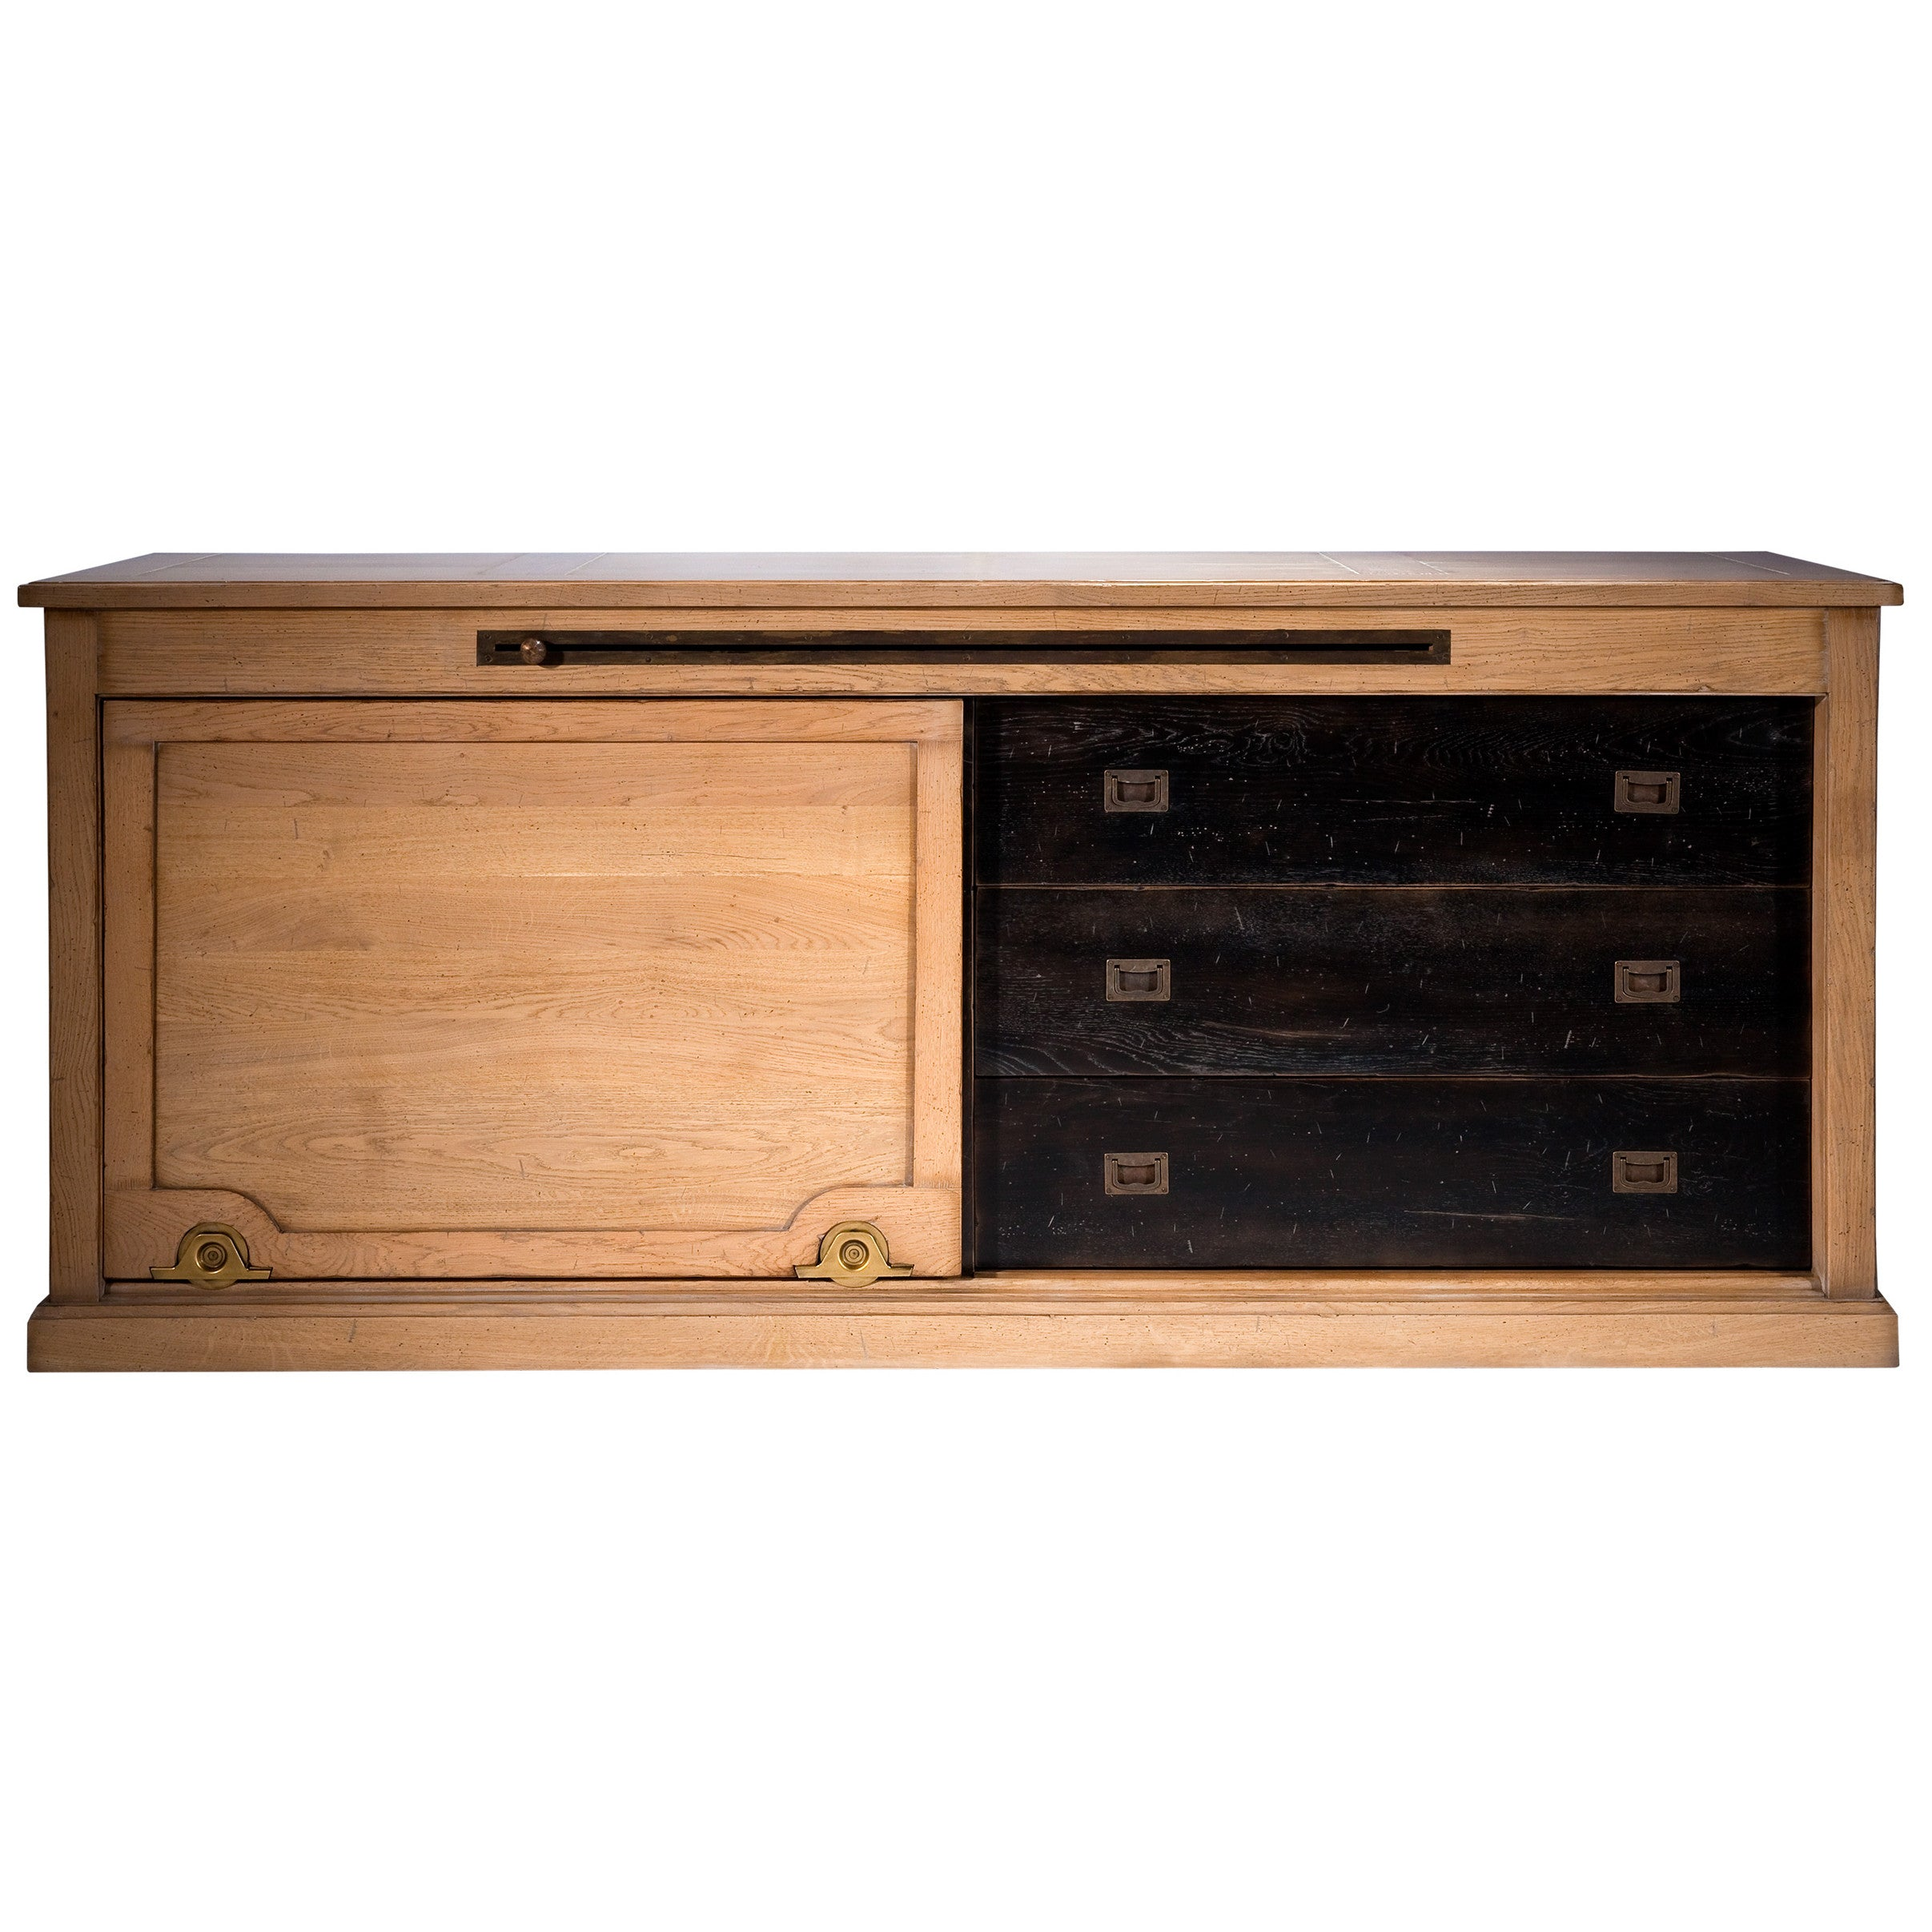 Horloger Light Sideboard